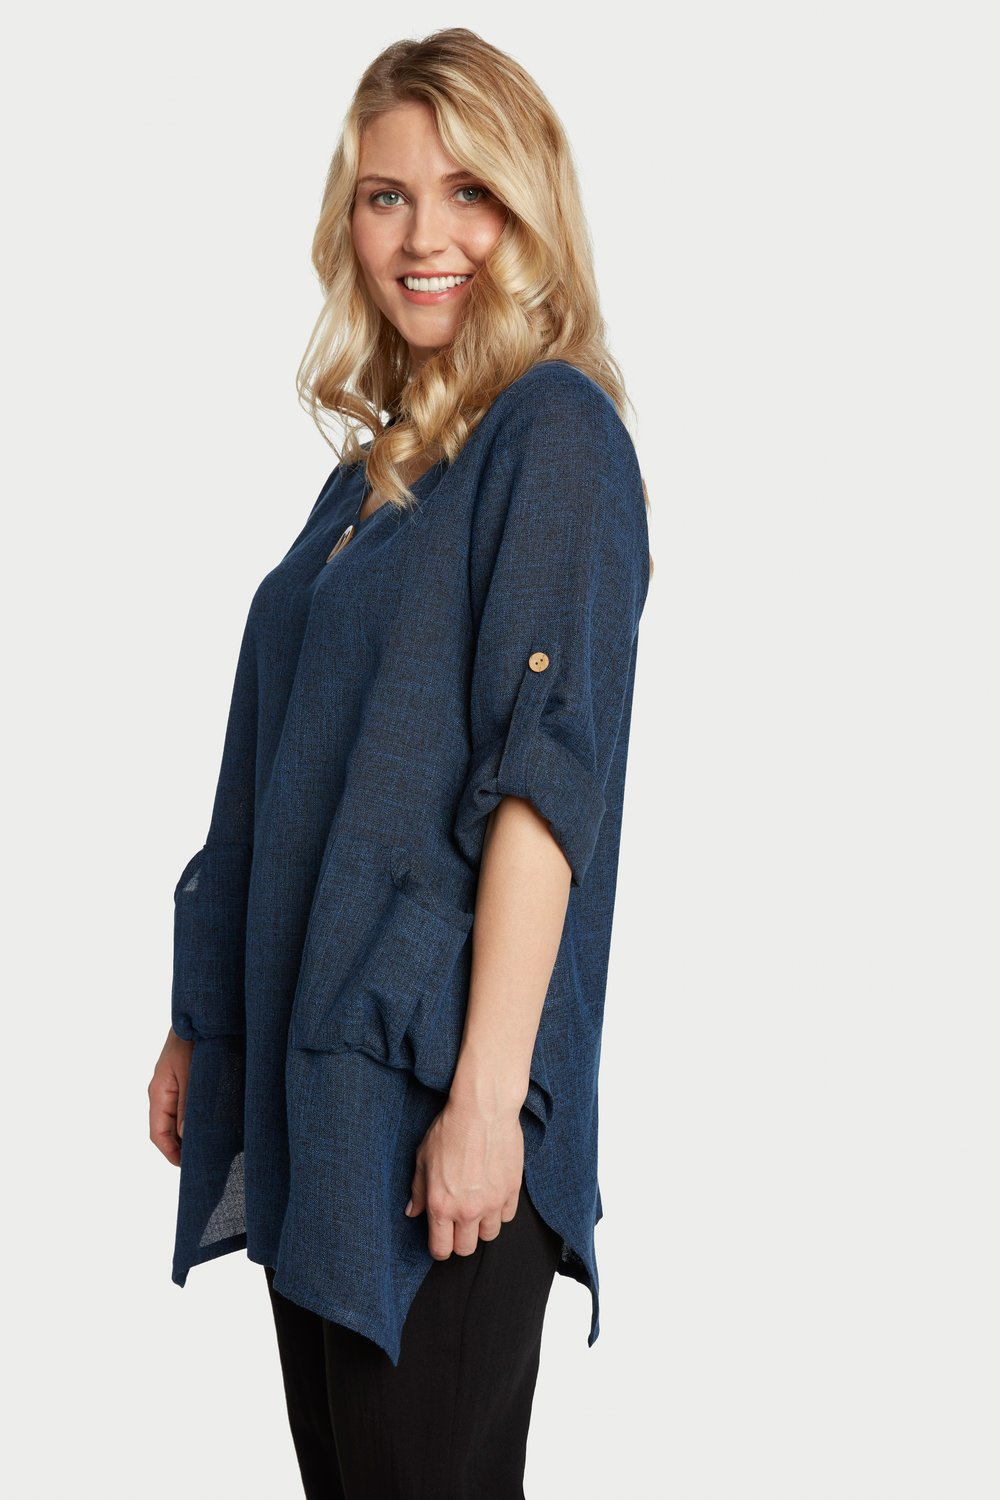 AA7139 - Artist Tunic Black/Navy Heathered - JC29